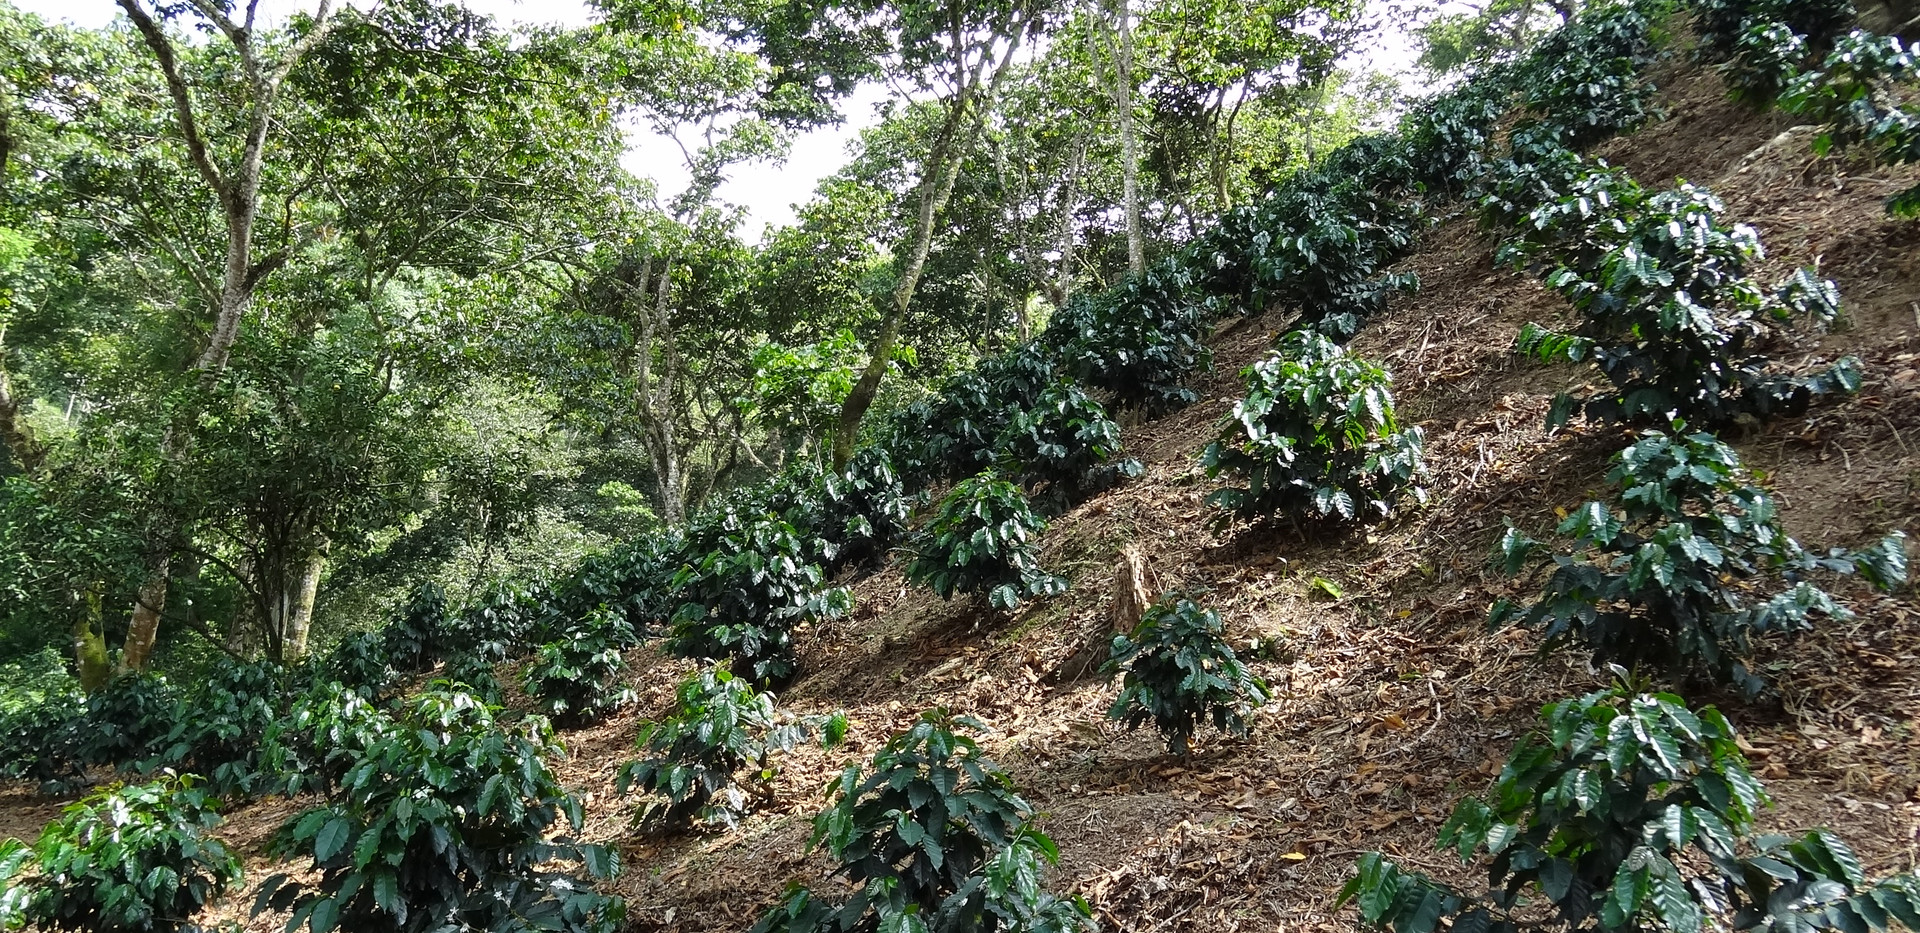 1 year old coffee plants